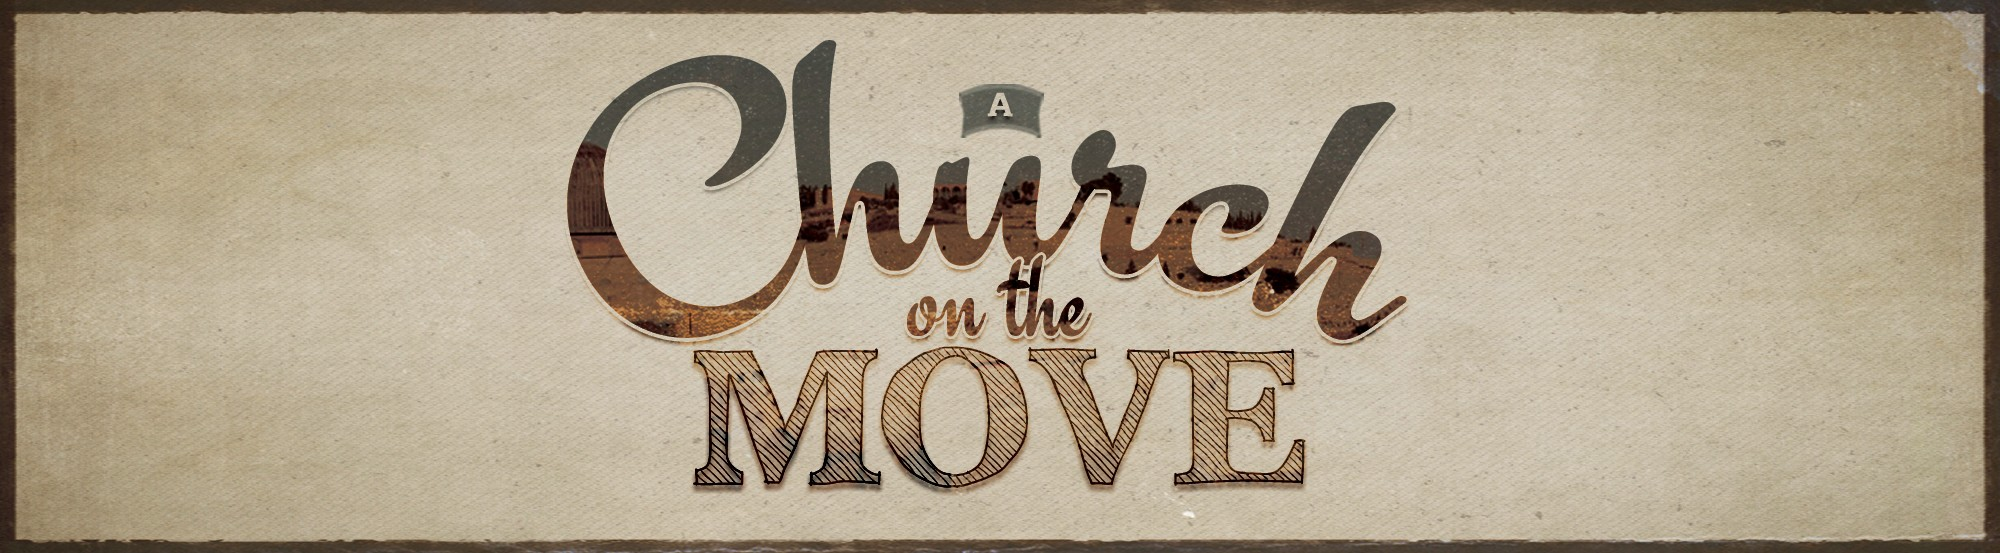 A Church on the Move sermon main